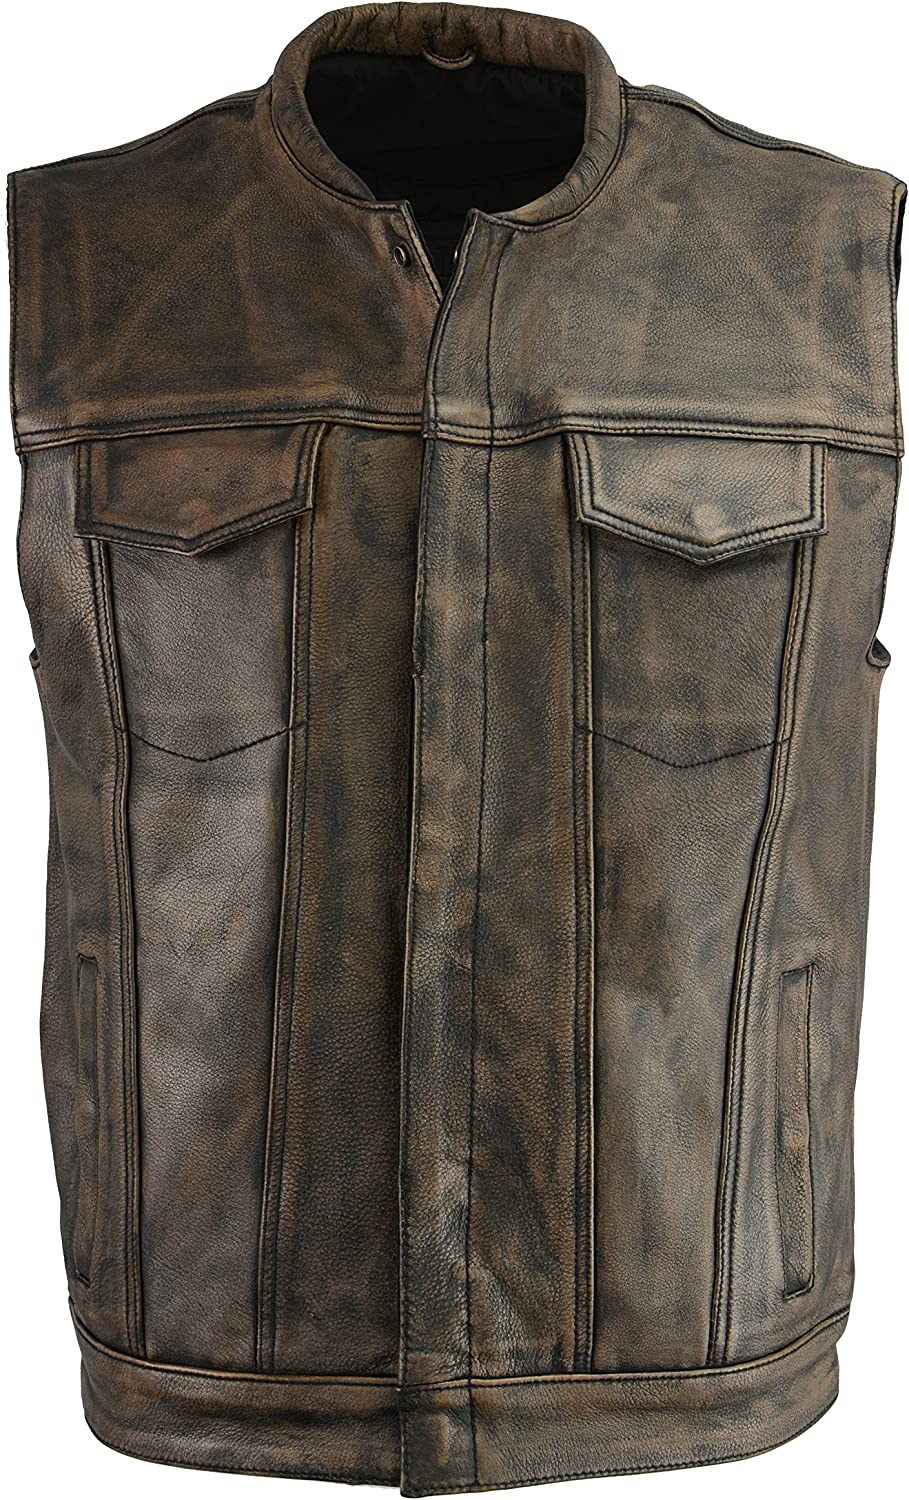 M Boss Motorcycle Apparel BOS13502 Men's Leather Distressed Brown Snap Front Vest - Medium